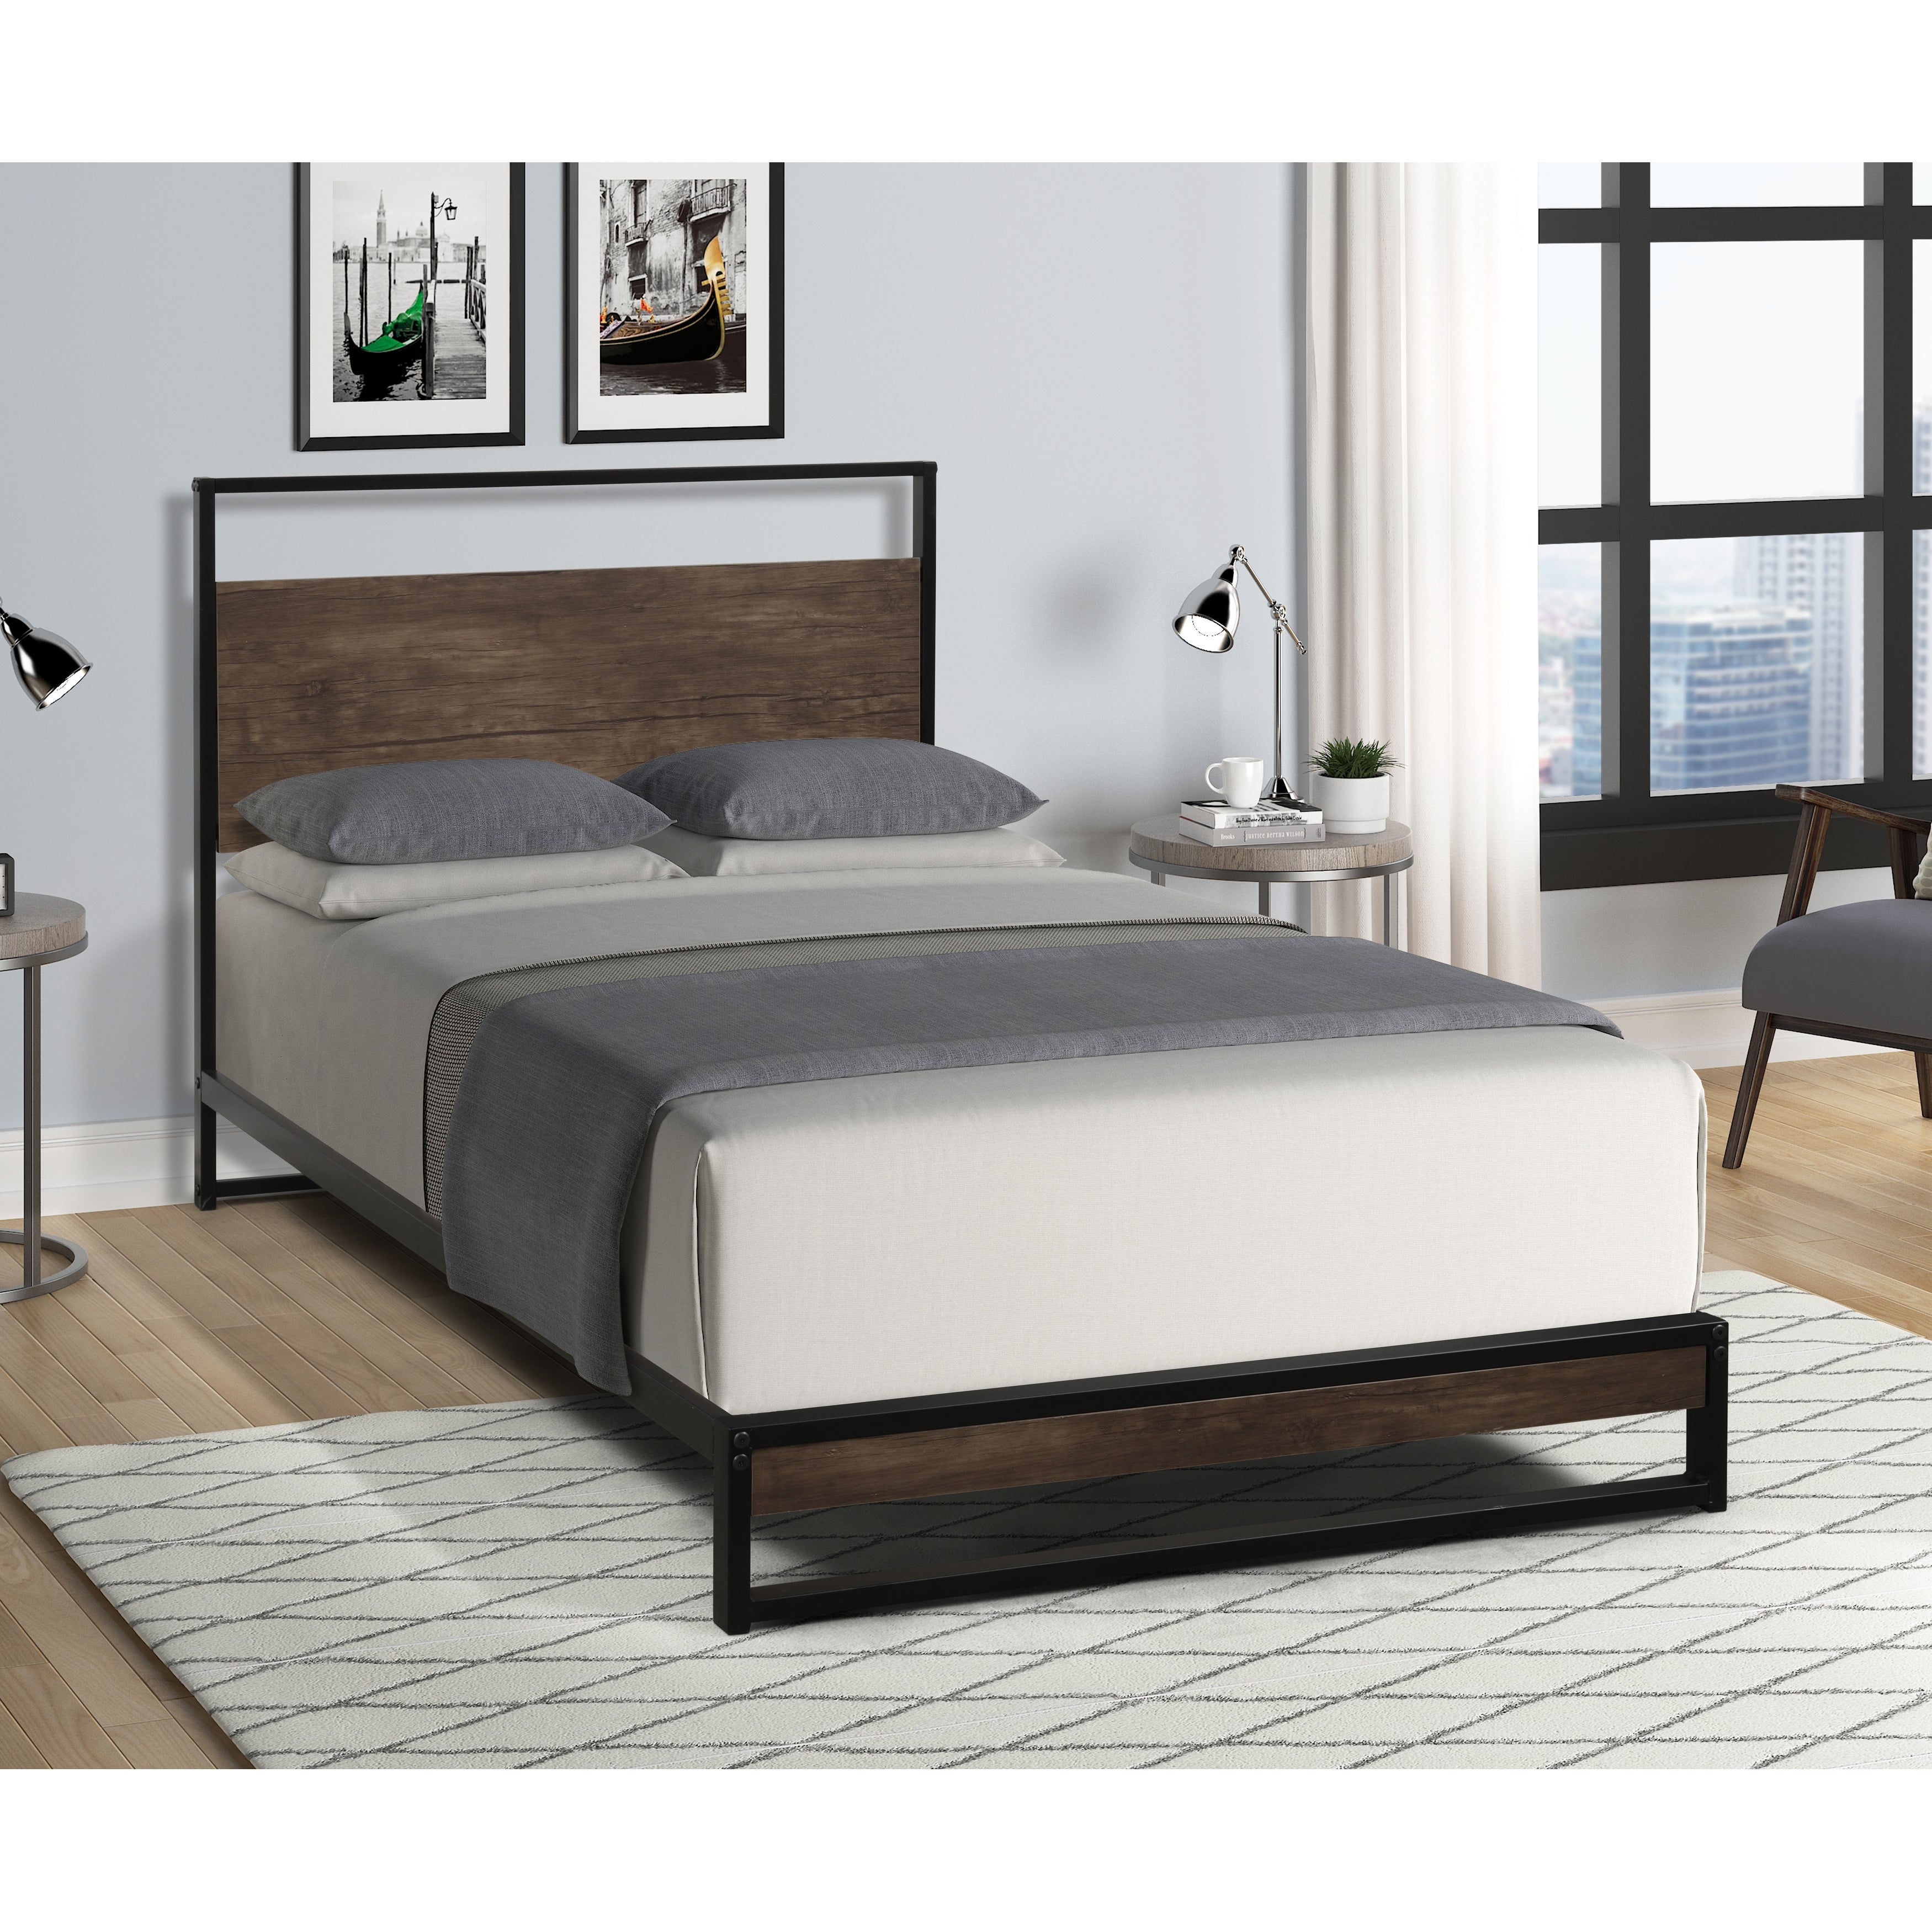 Metal Bed Frame With Wood Slats On Sale Overstock 32687055